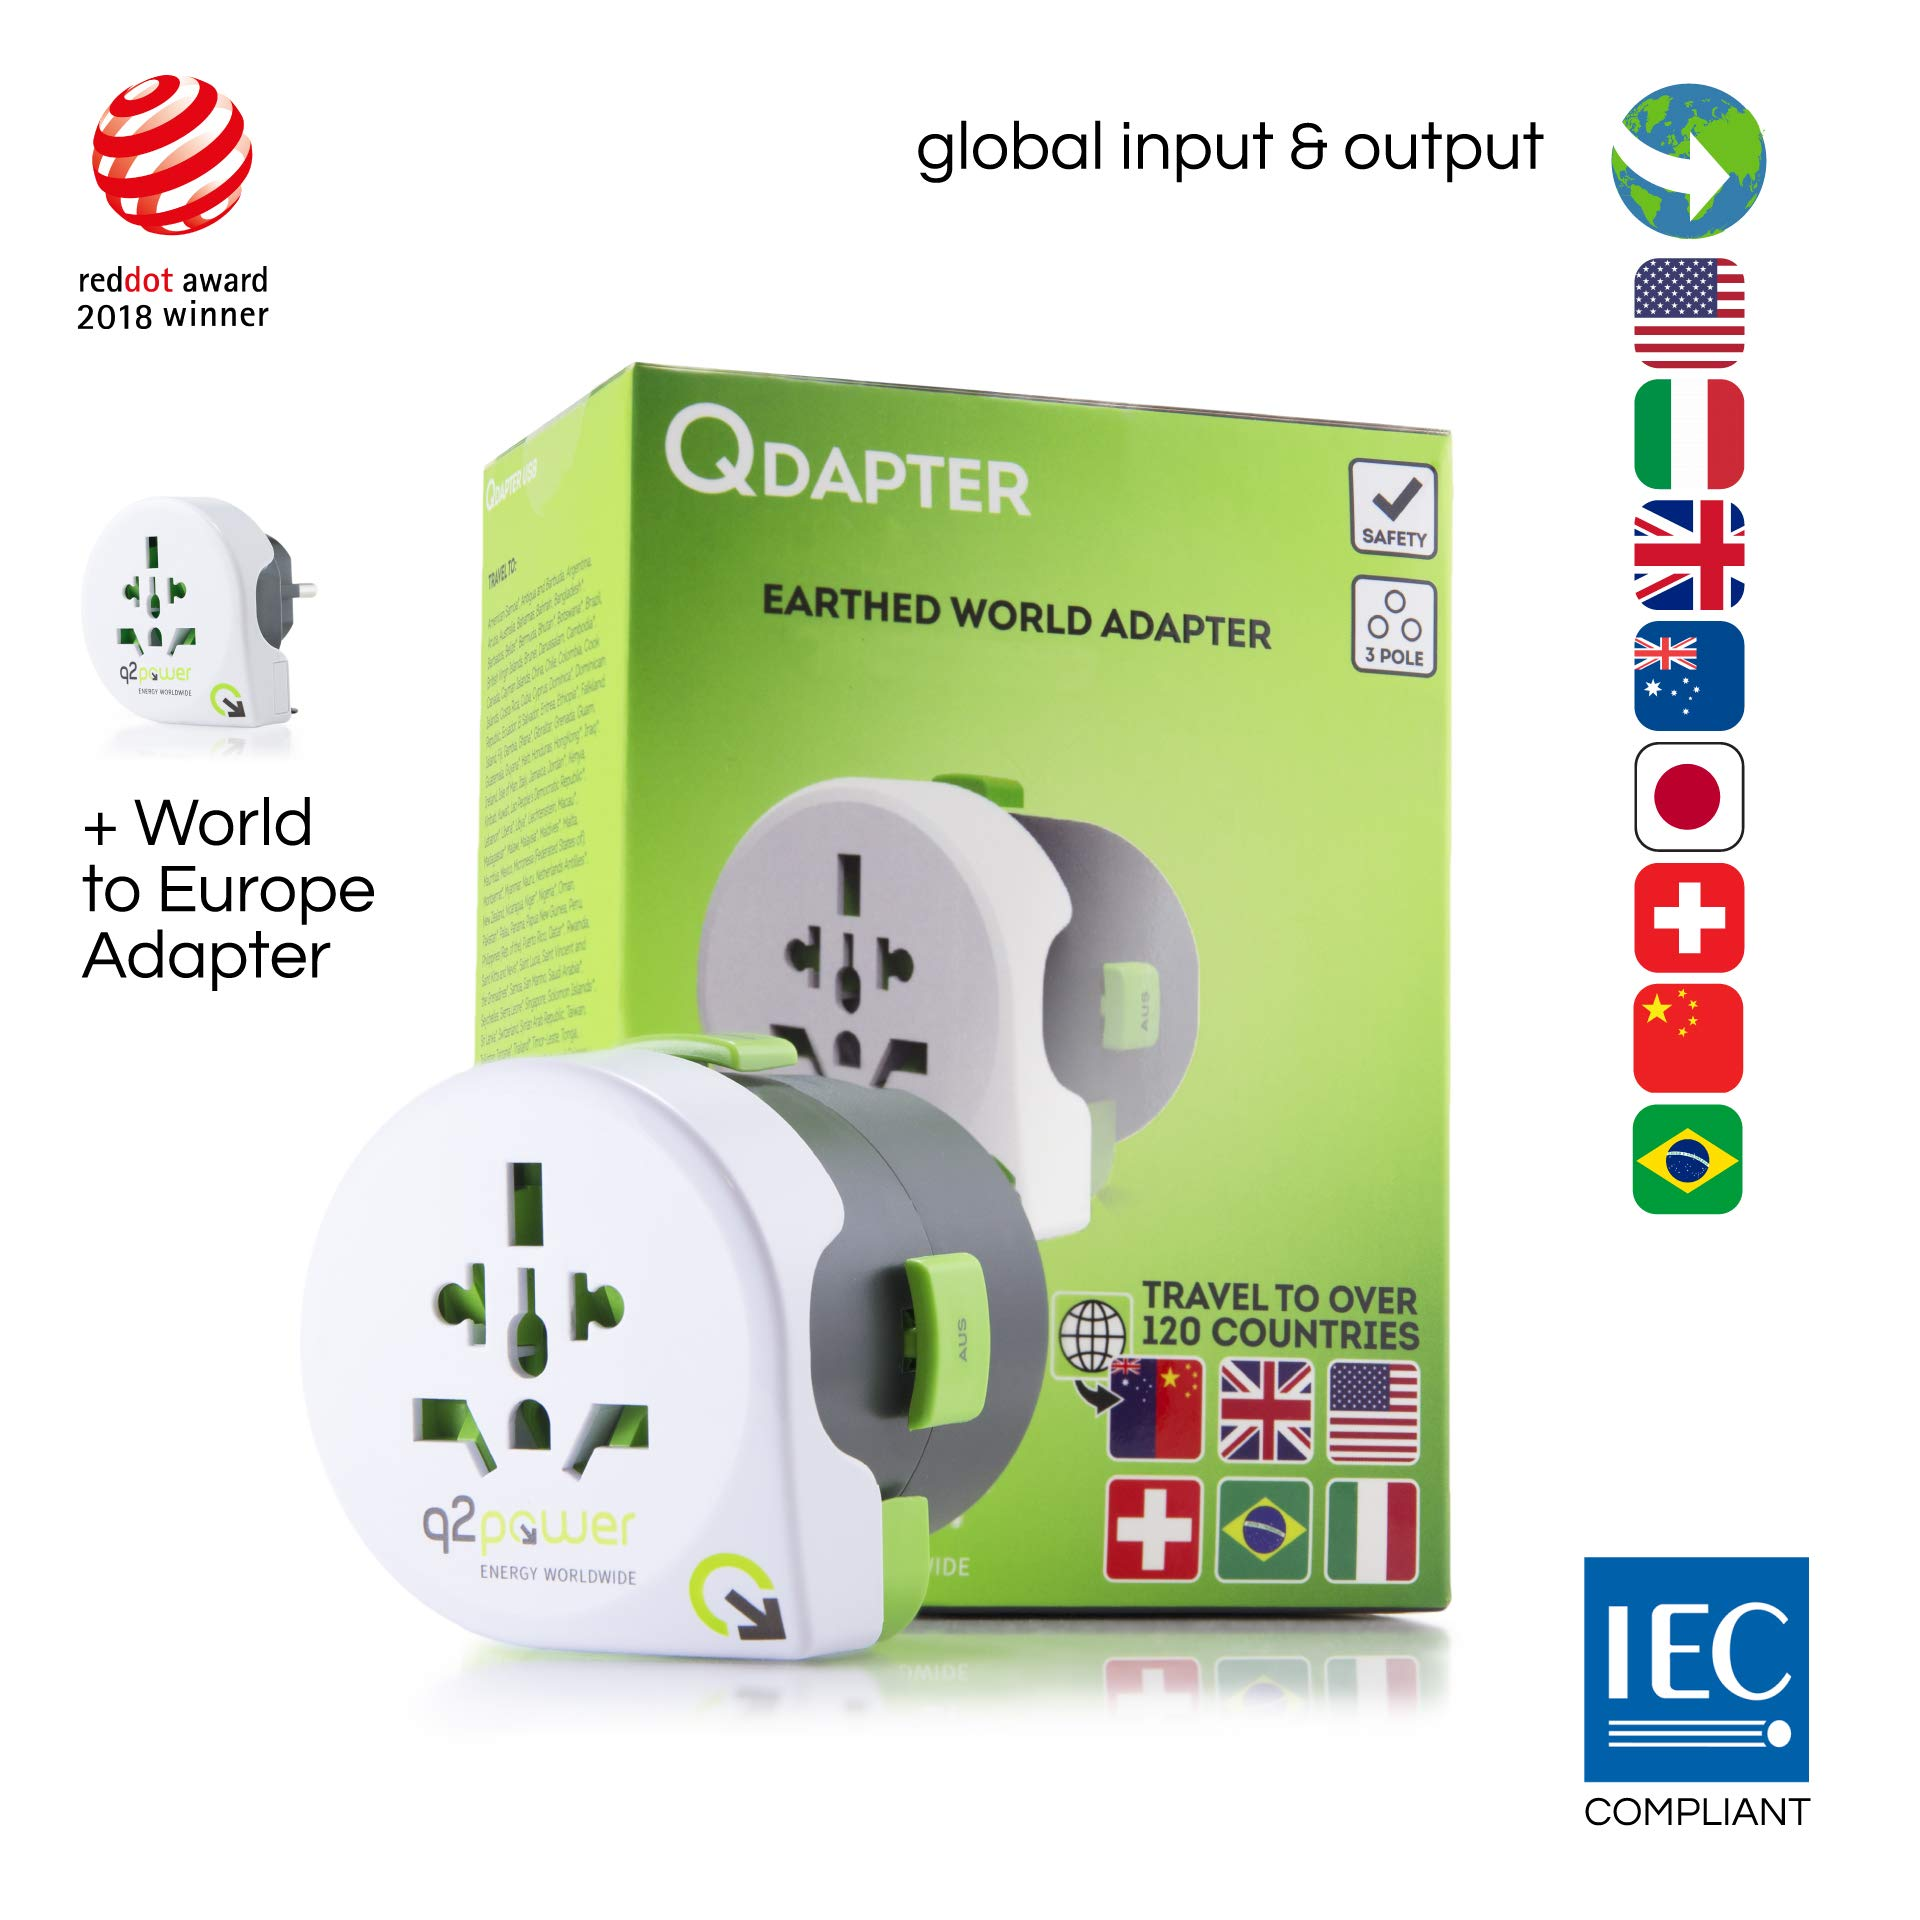 World Travel Adapter - Qdapter 360 by Q2Power | All-in-One International Travel Plug | Grounded & Safe